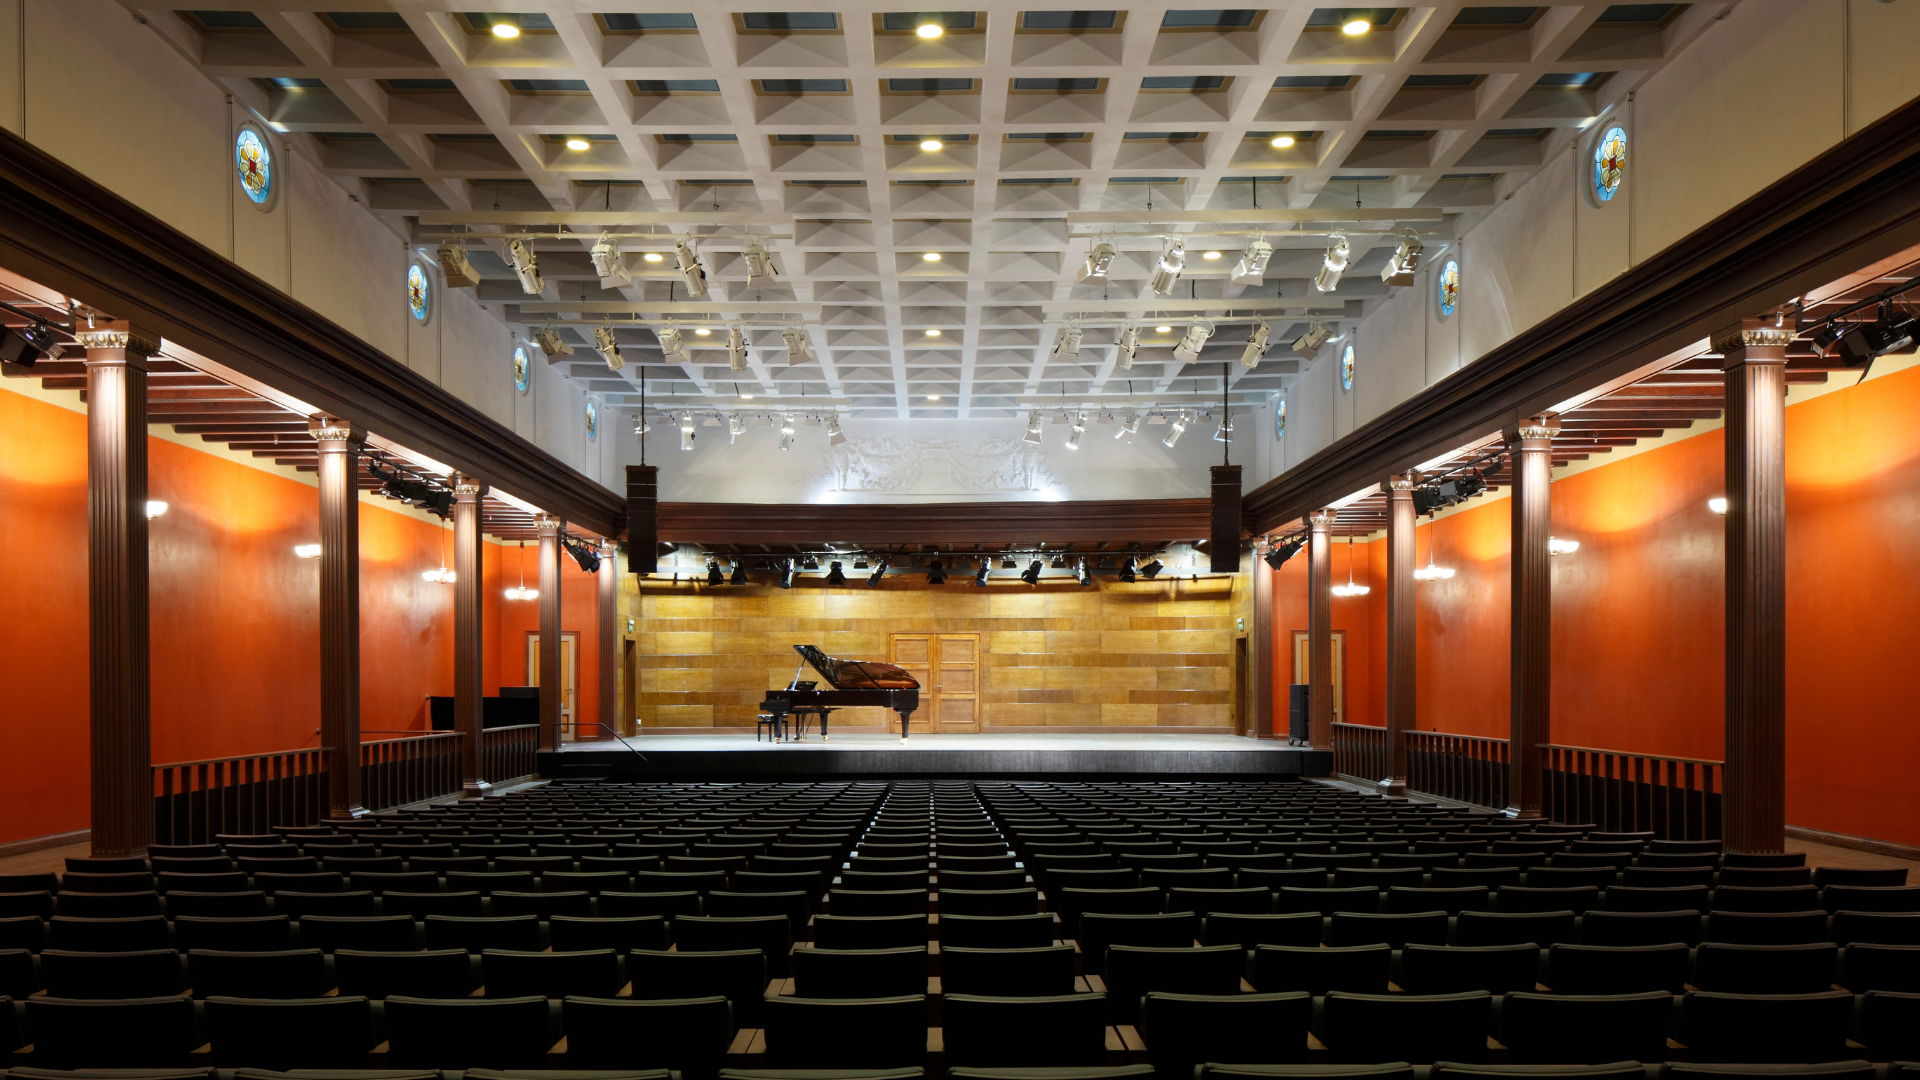 Dzintari Concert Hall is a unique concert stage near the Baltic Sea